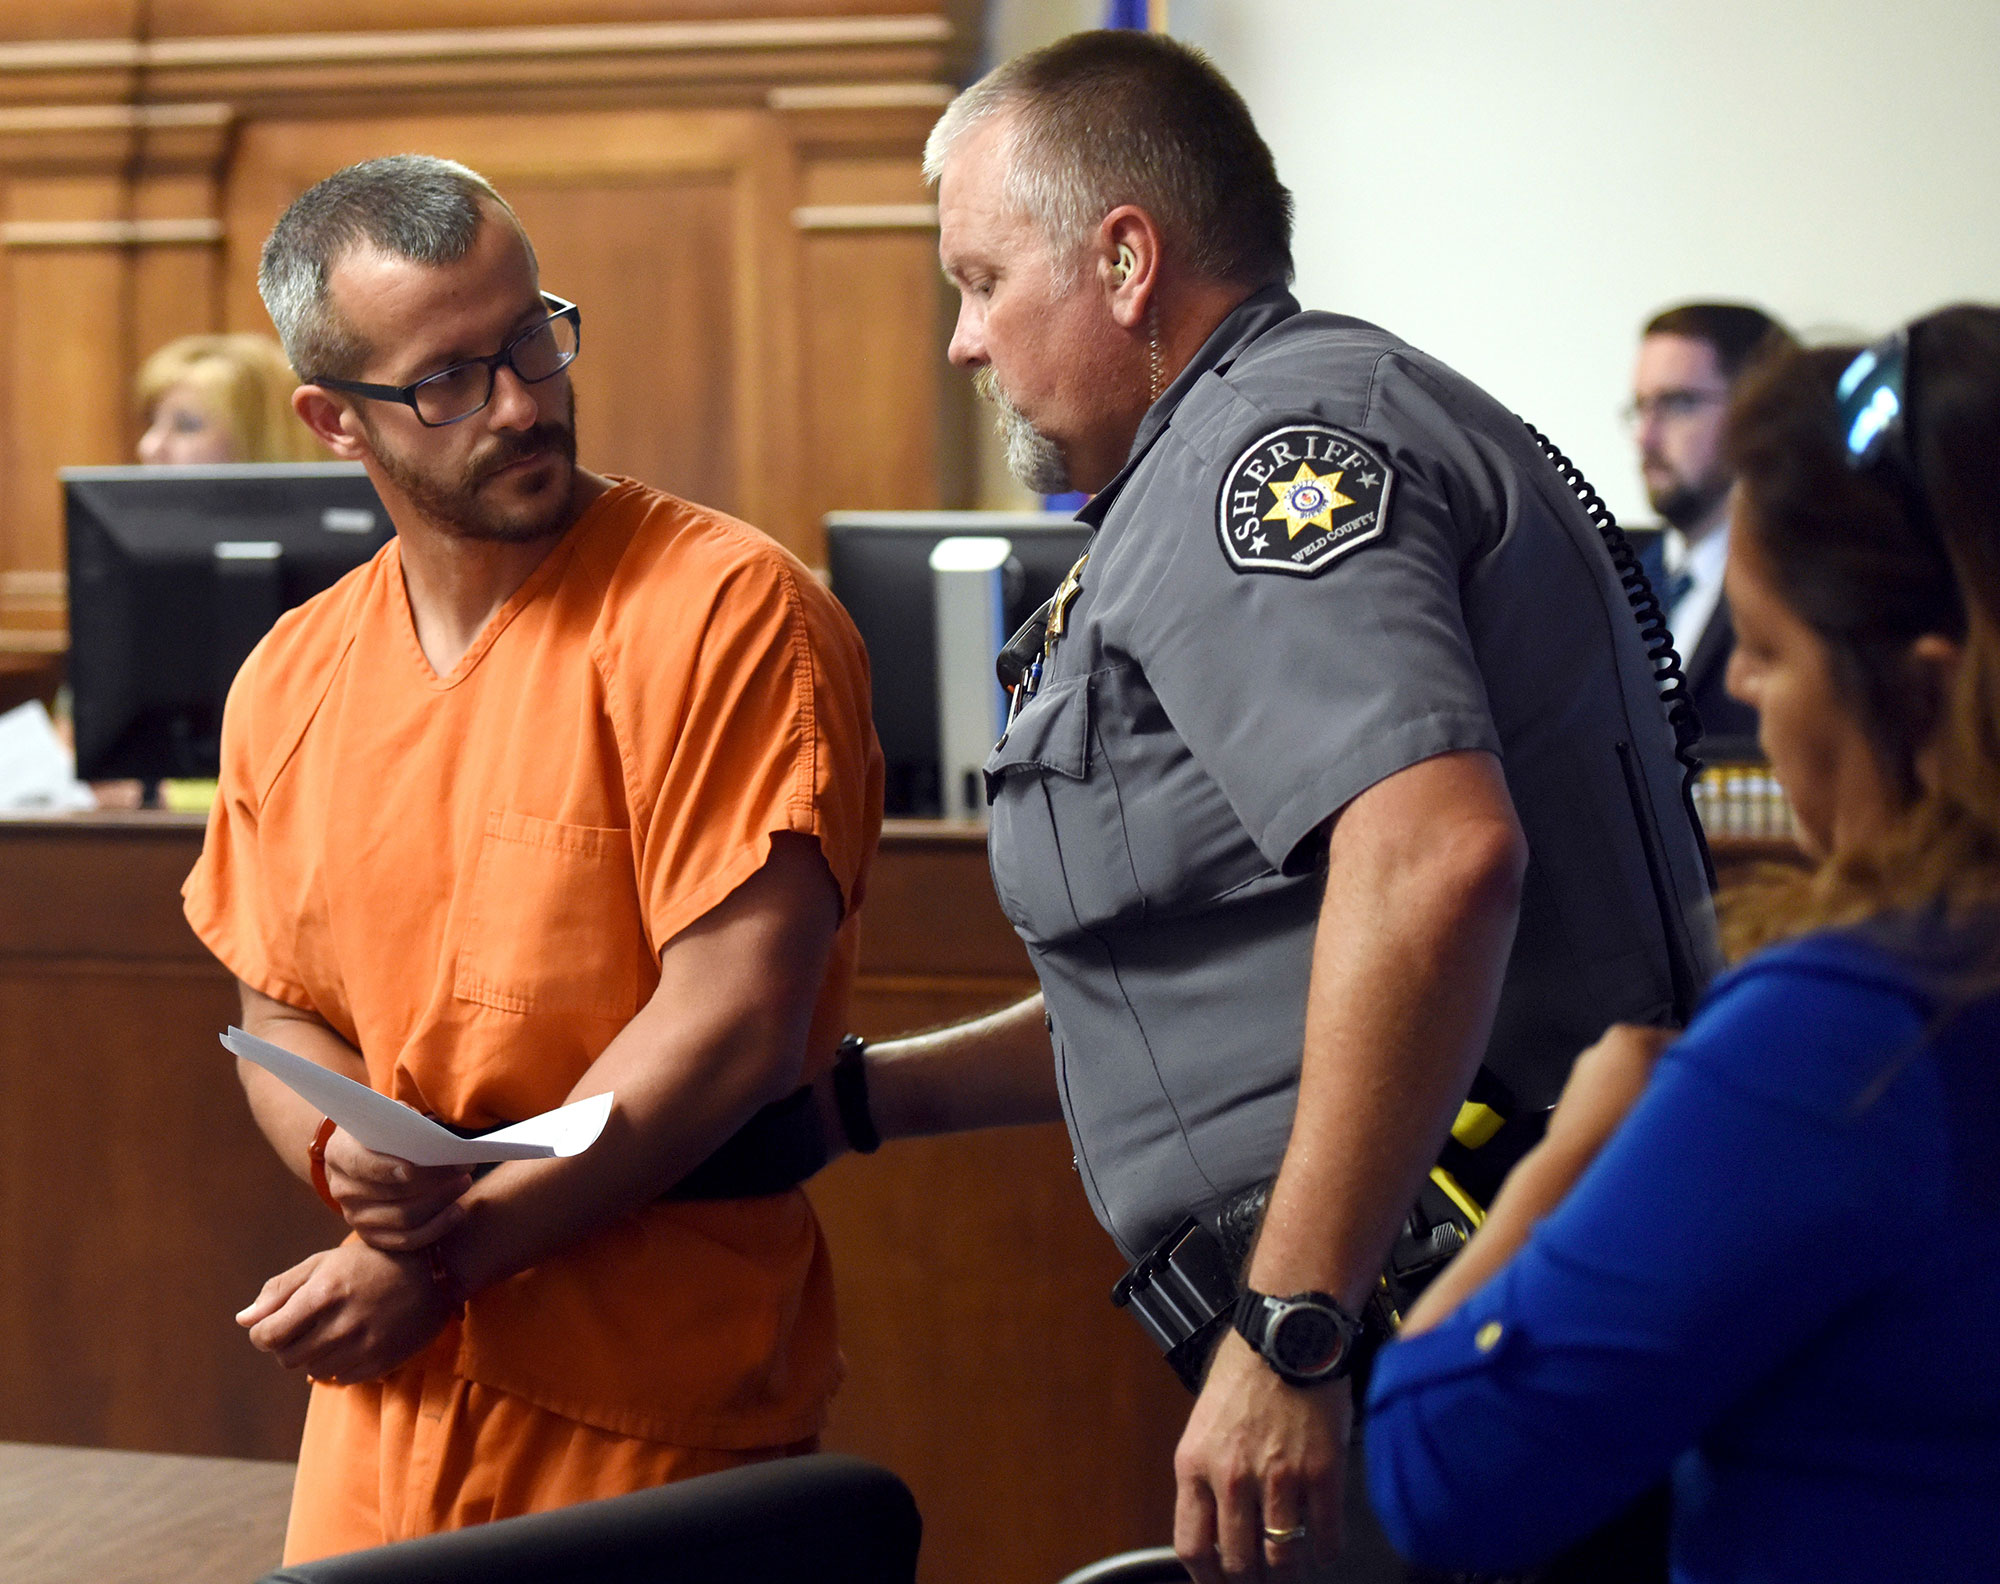 Christopher Watts court case, Greeley, Colorado, USA - 16 Aug 2018